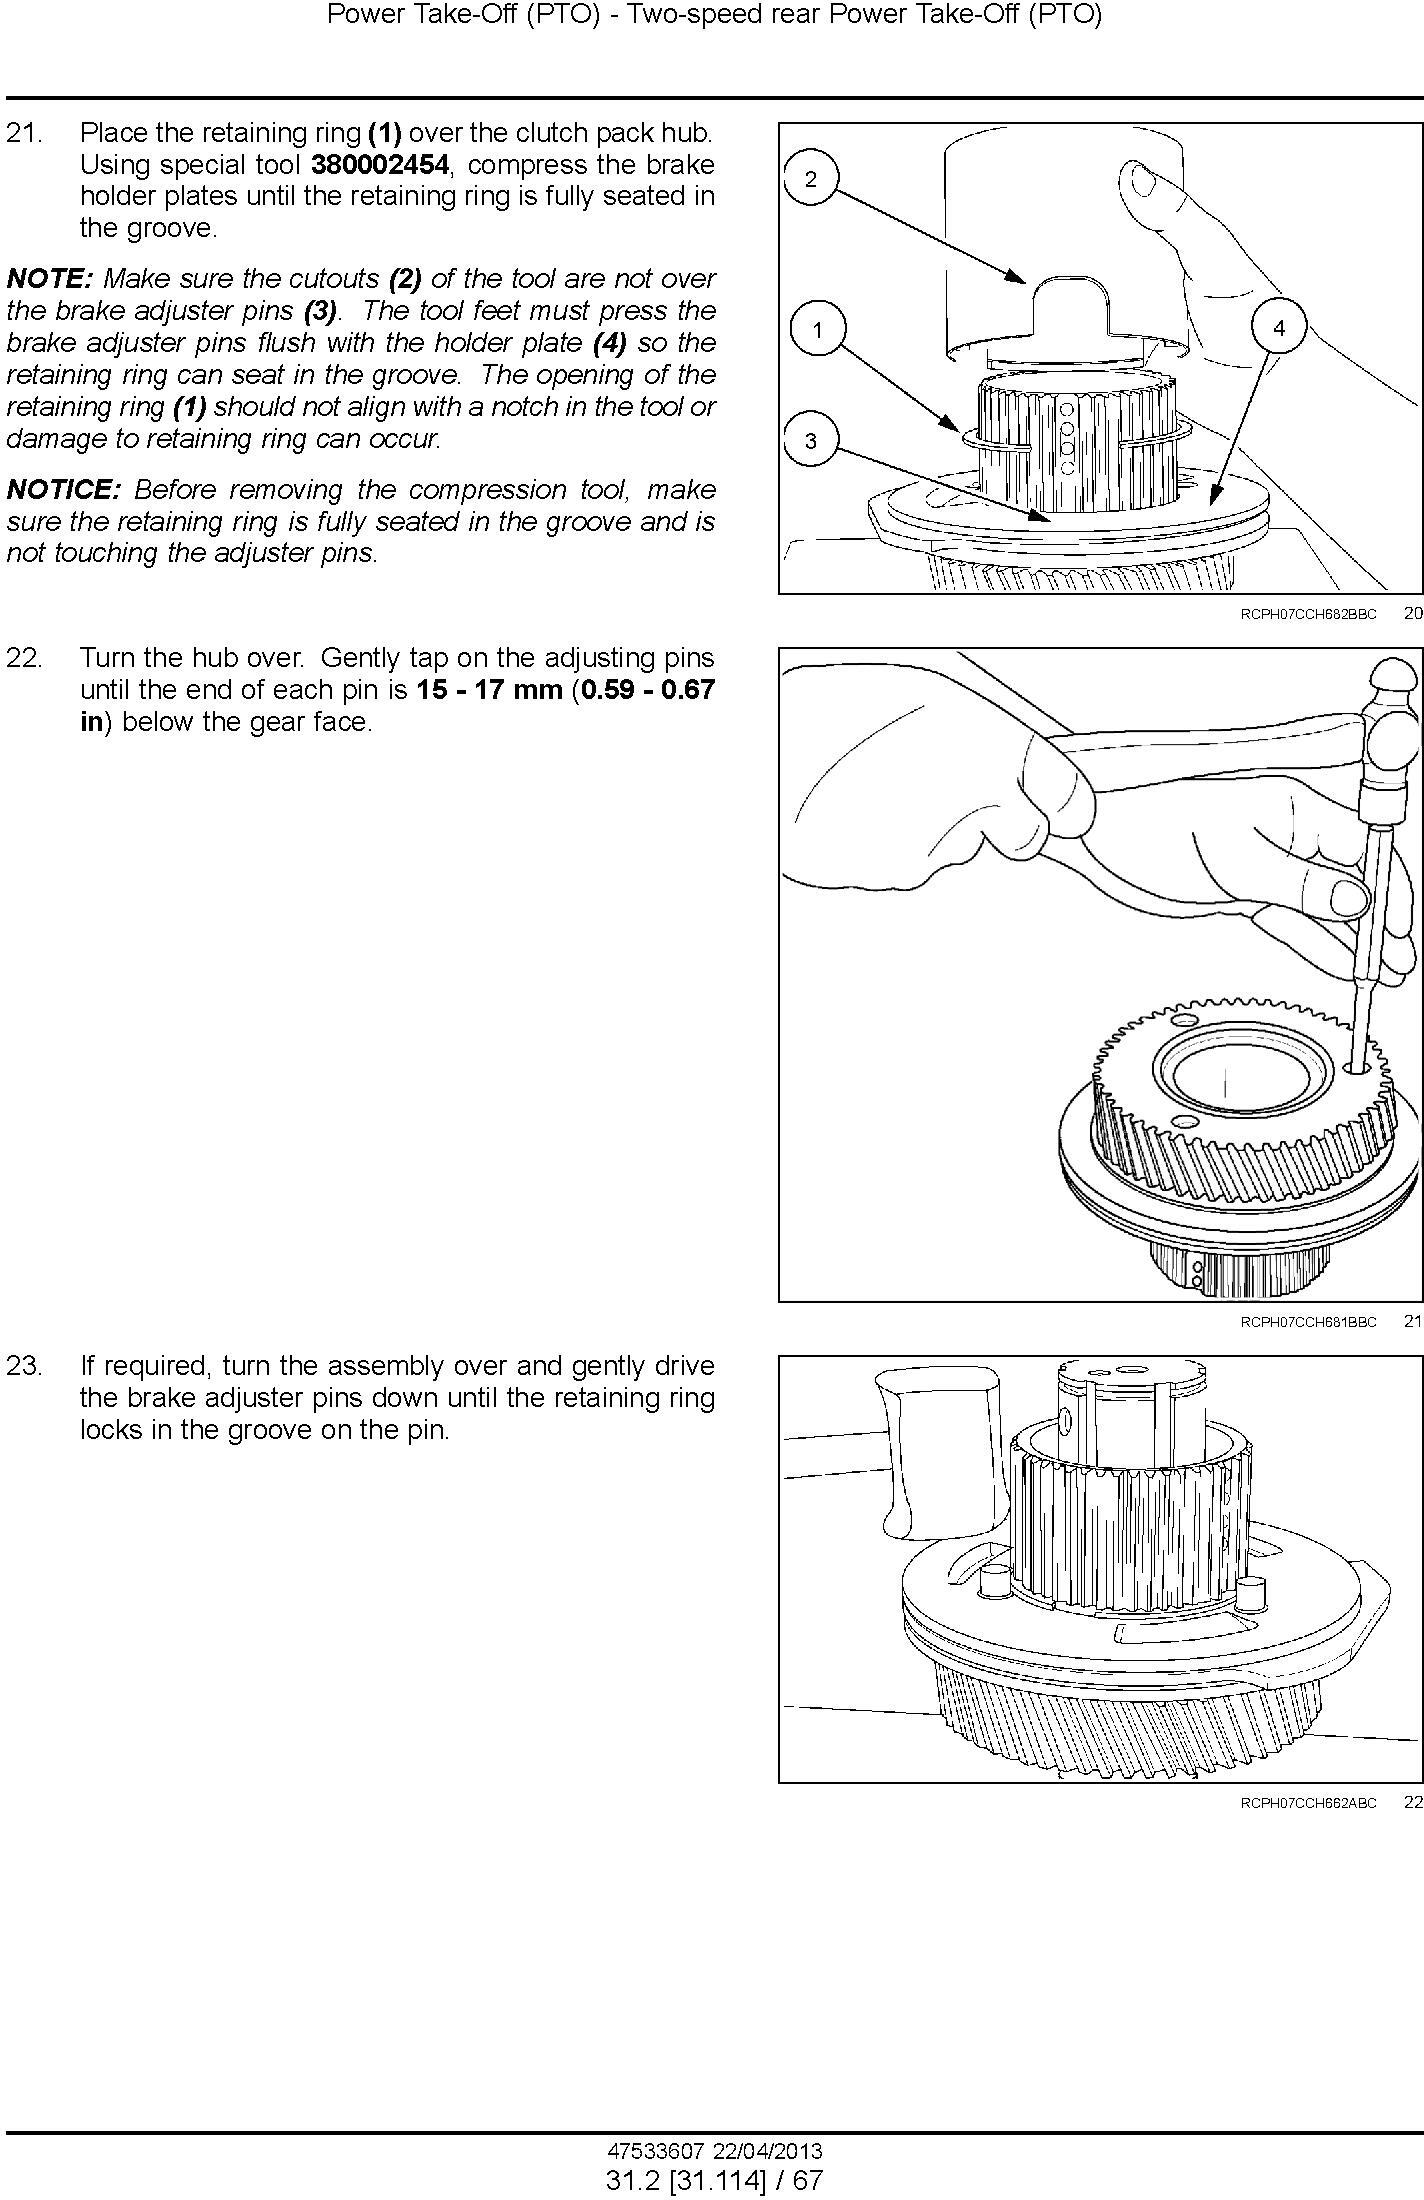 New Holland T8.275, T8.300, T8.330, T8.360, T8.390 (PST) Tractor (PIN ZCRC02583-) Service Manual - 3